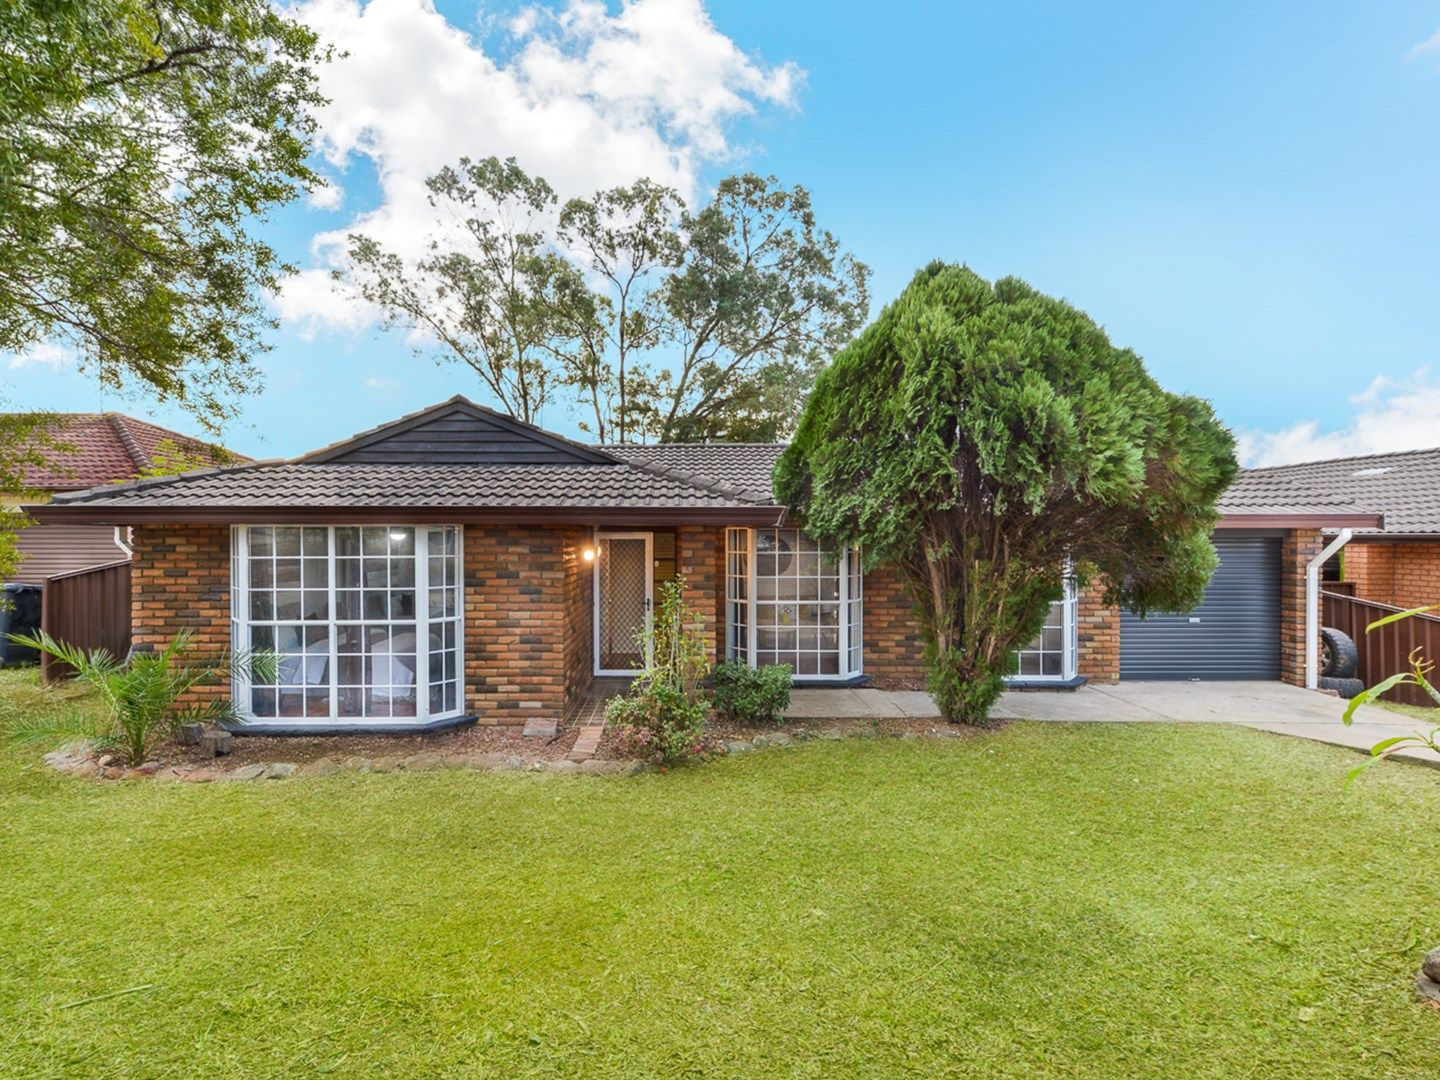 24 Spitfire Dr, Raby NSW 2566, Image 0